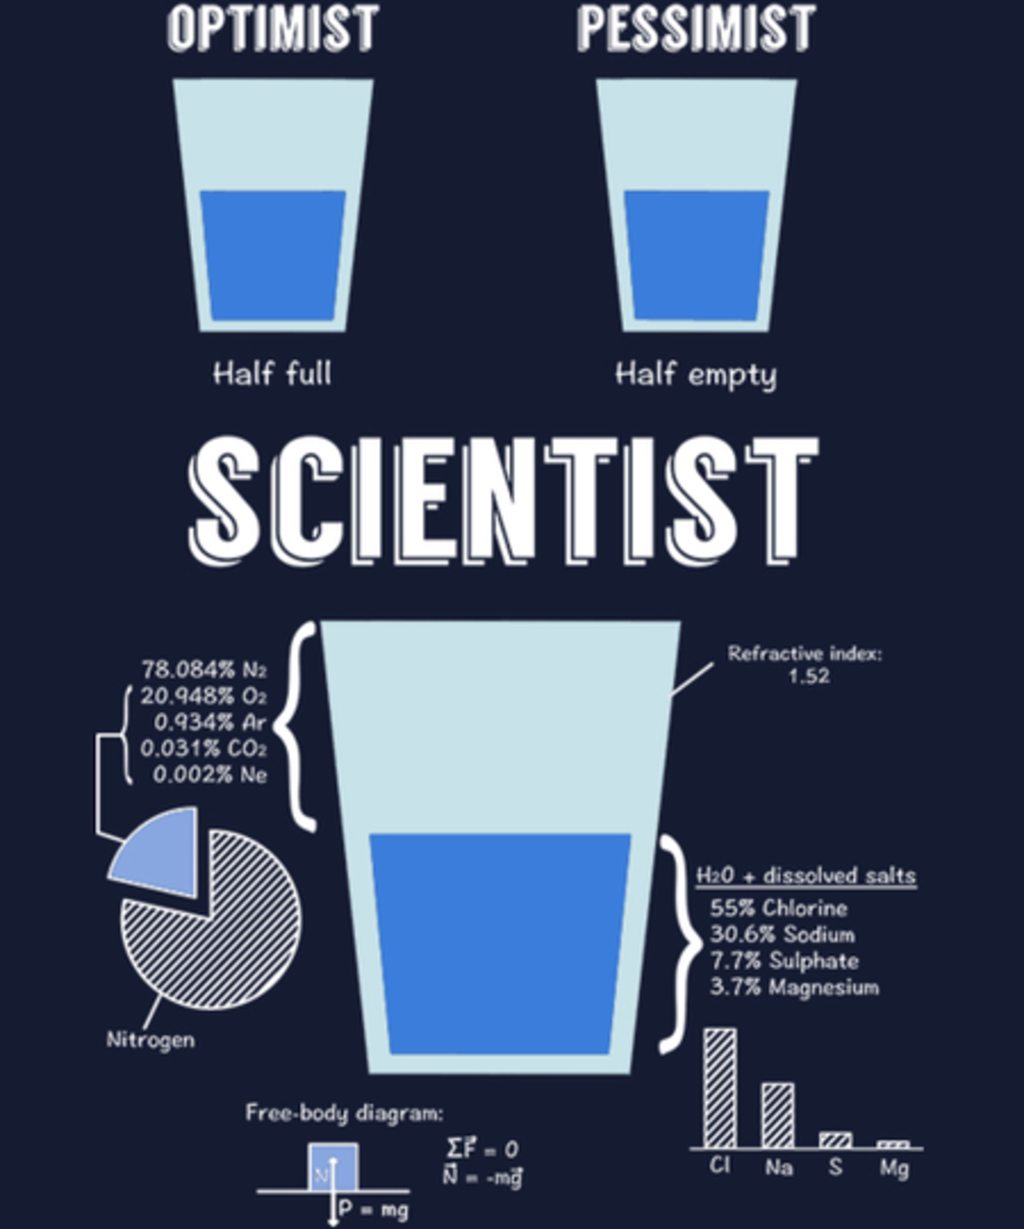 Qwertee: Optimist, pessimist, SCIENTIST!